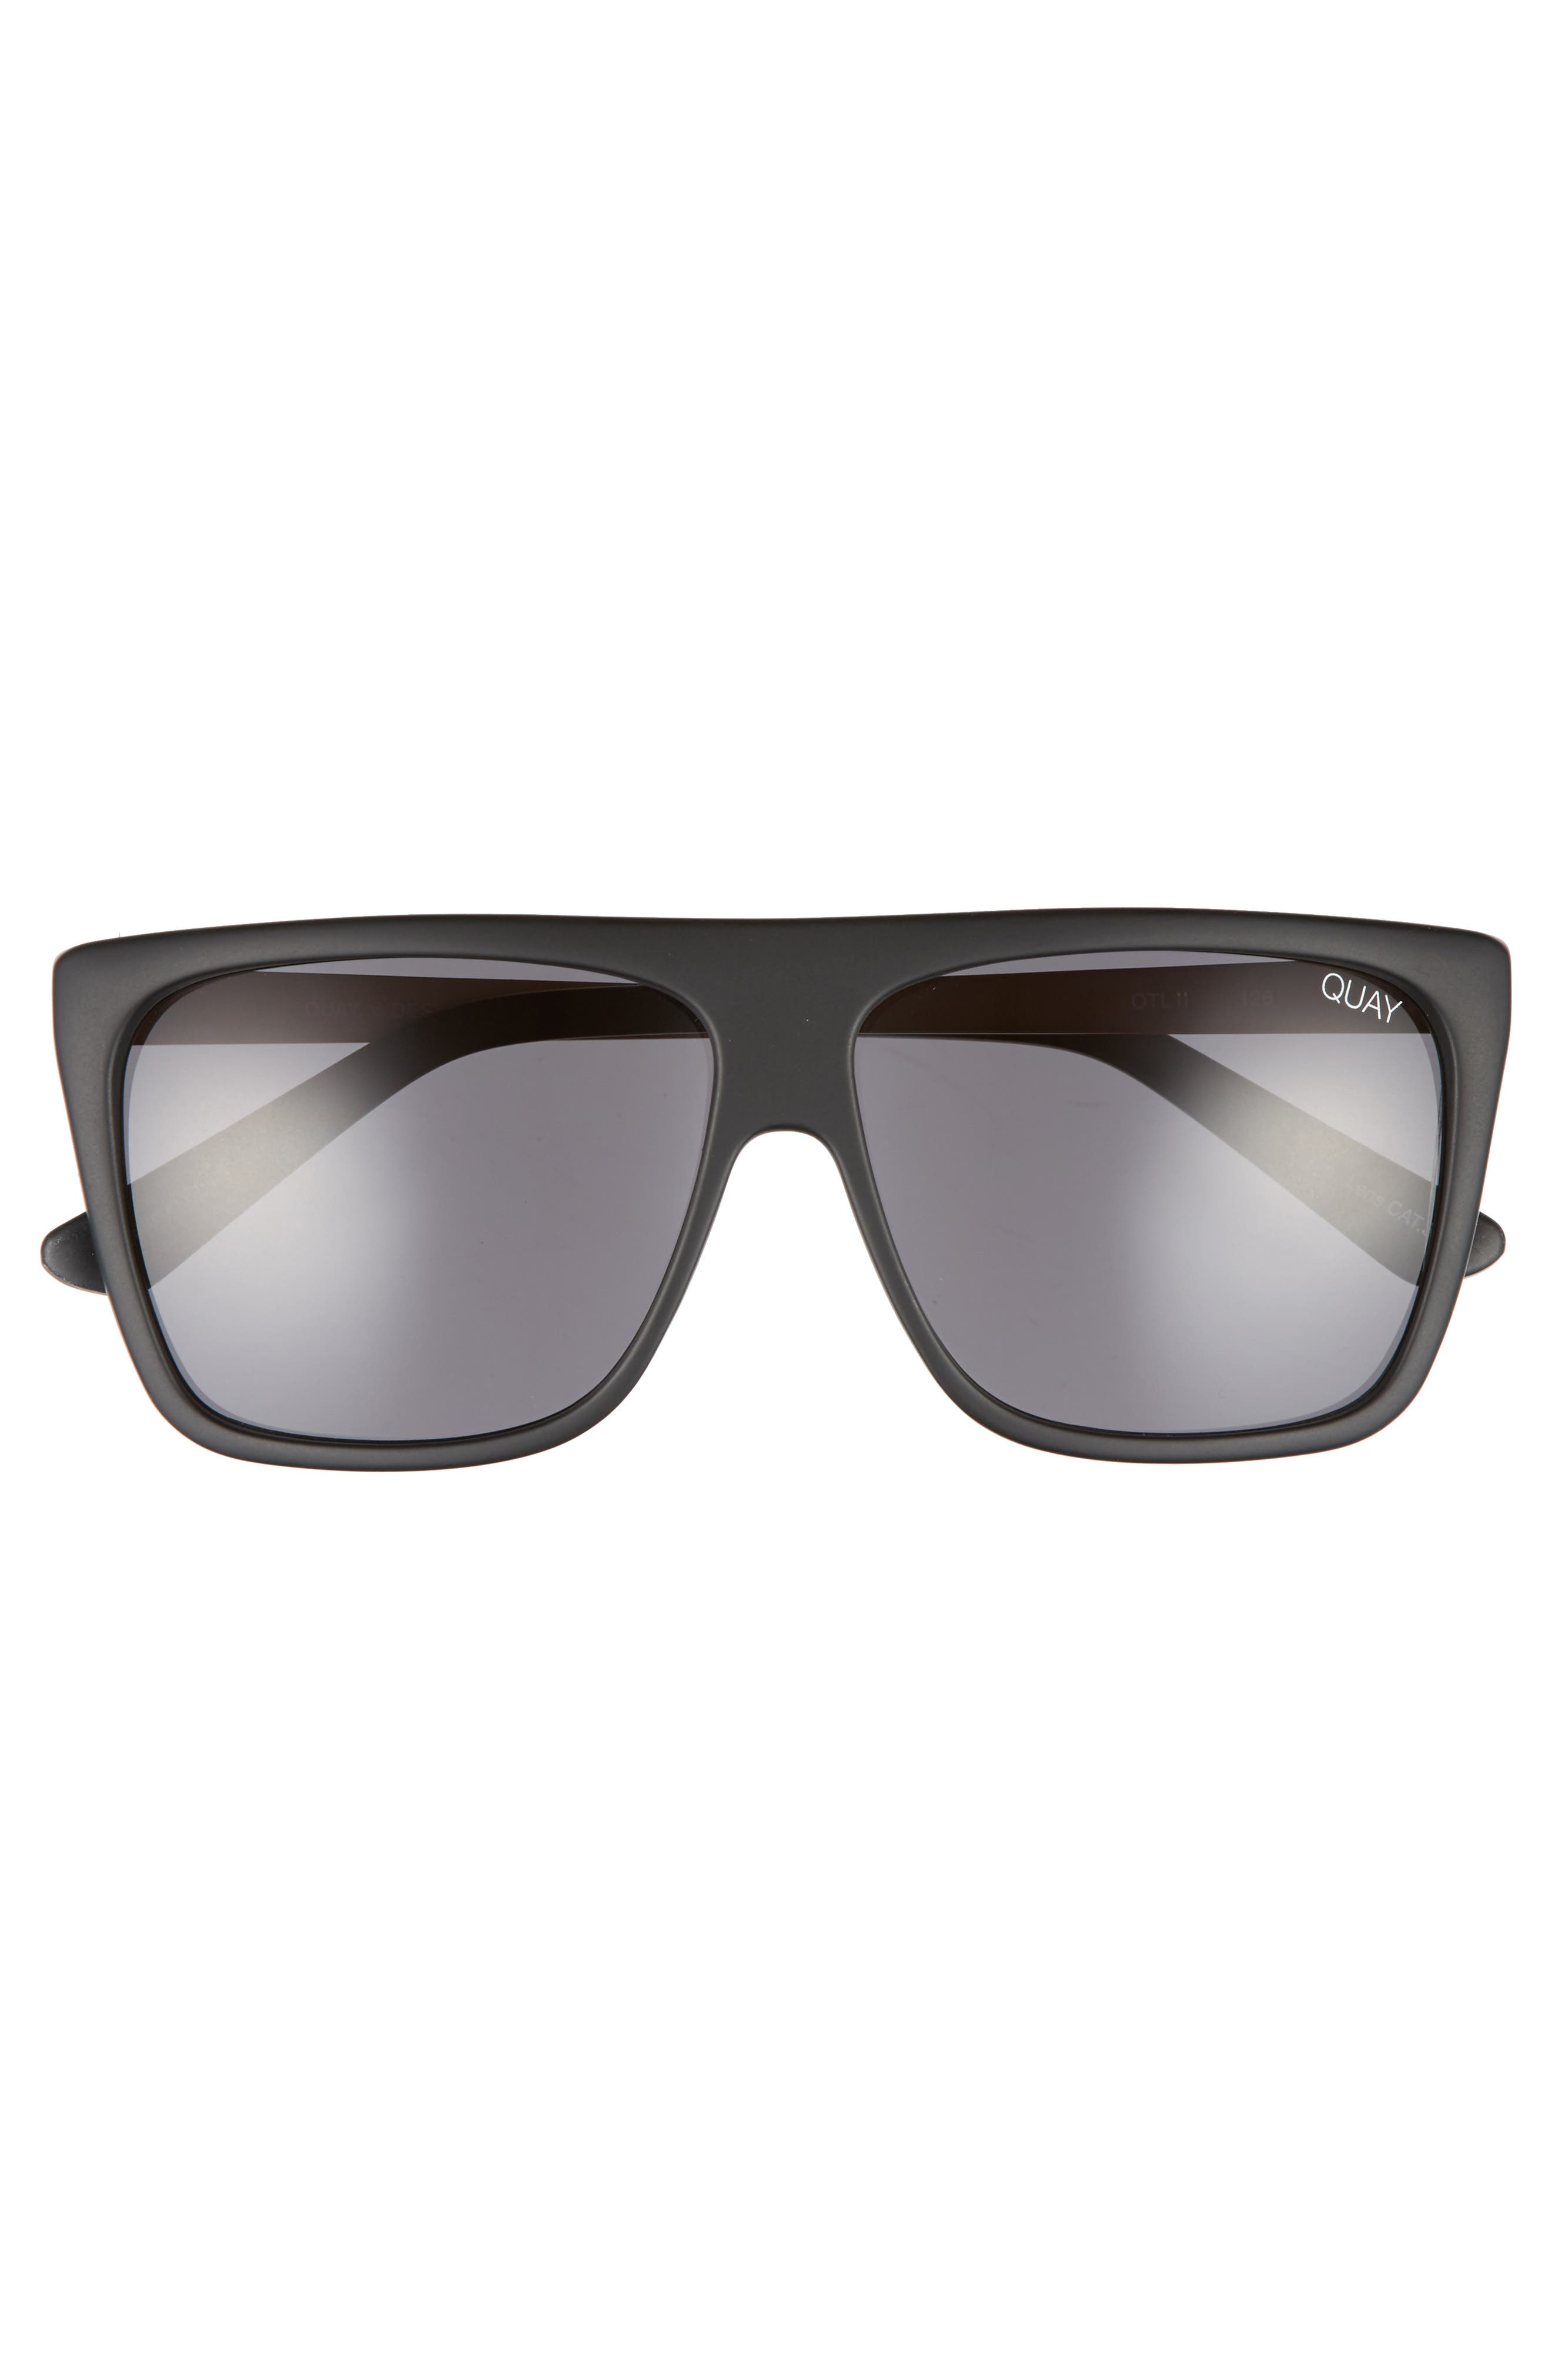 x Desi Perkins On the Low 60mm Square Sunglasses,                             Alternate thumbnail 4, color,                             Black/ Smoke